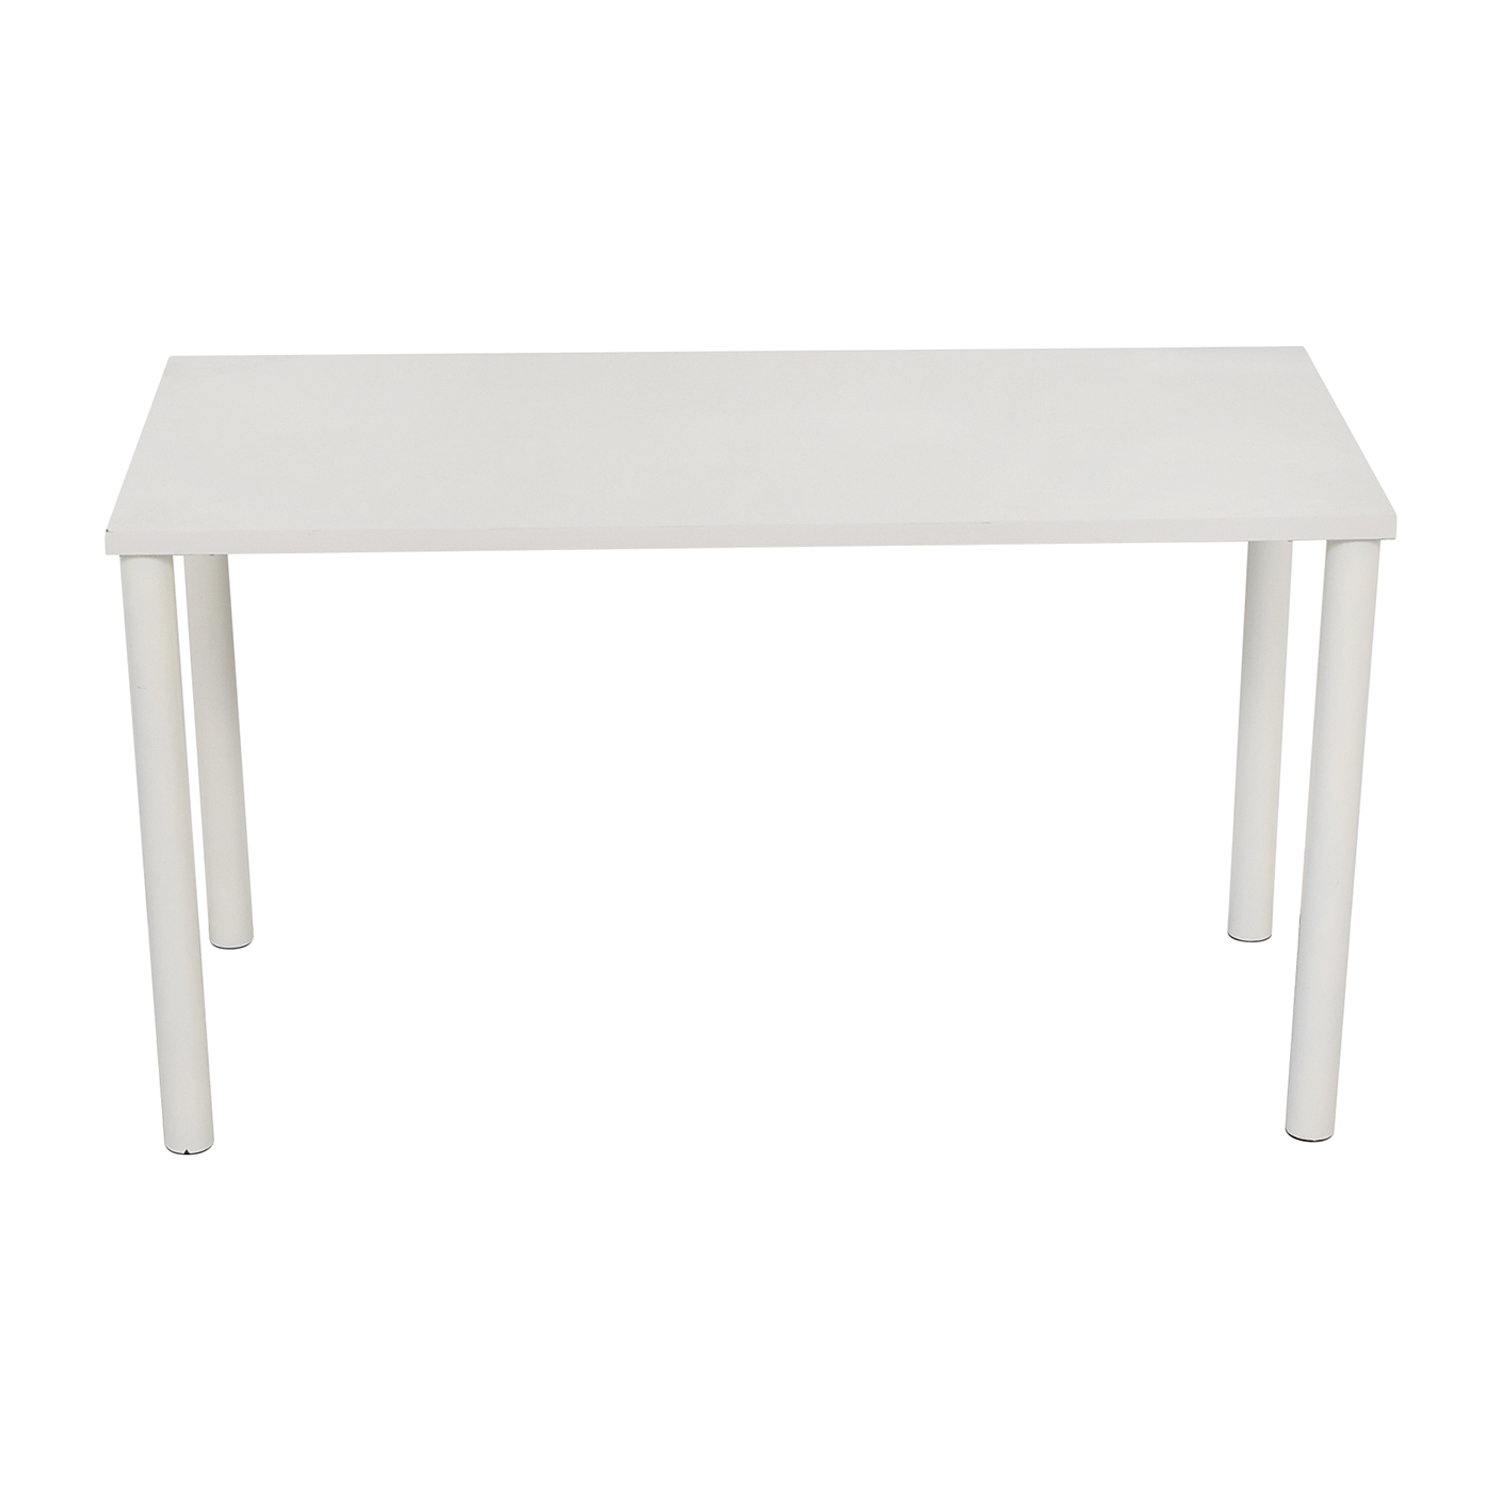 Container Store Container Store White Table White